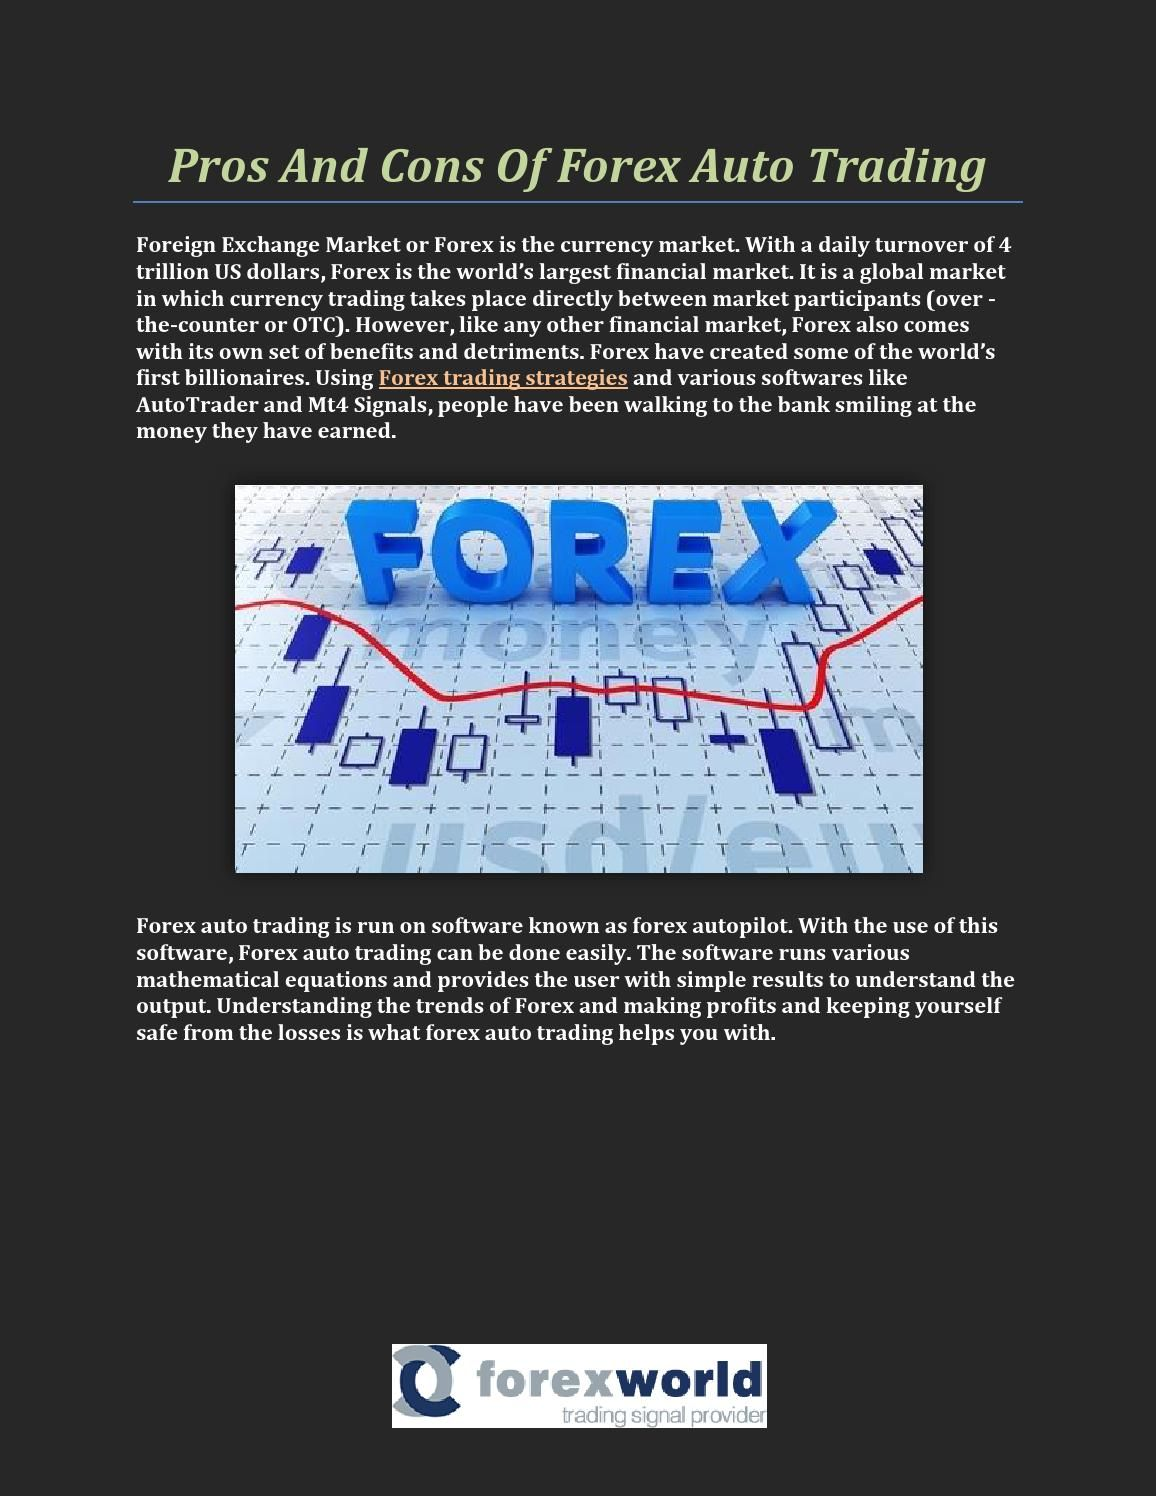 Pros And Cons Of Forex Auto Trading Financial Markets Forex